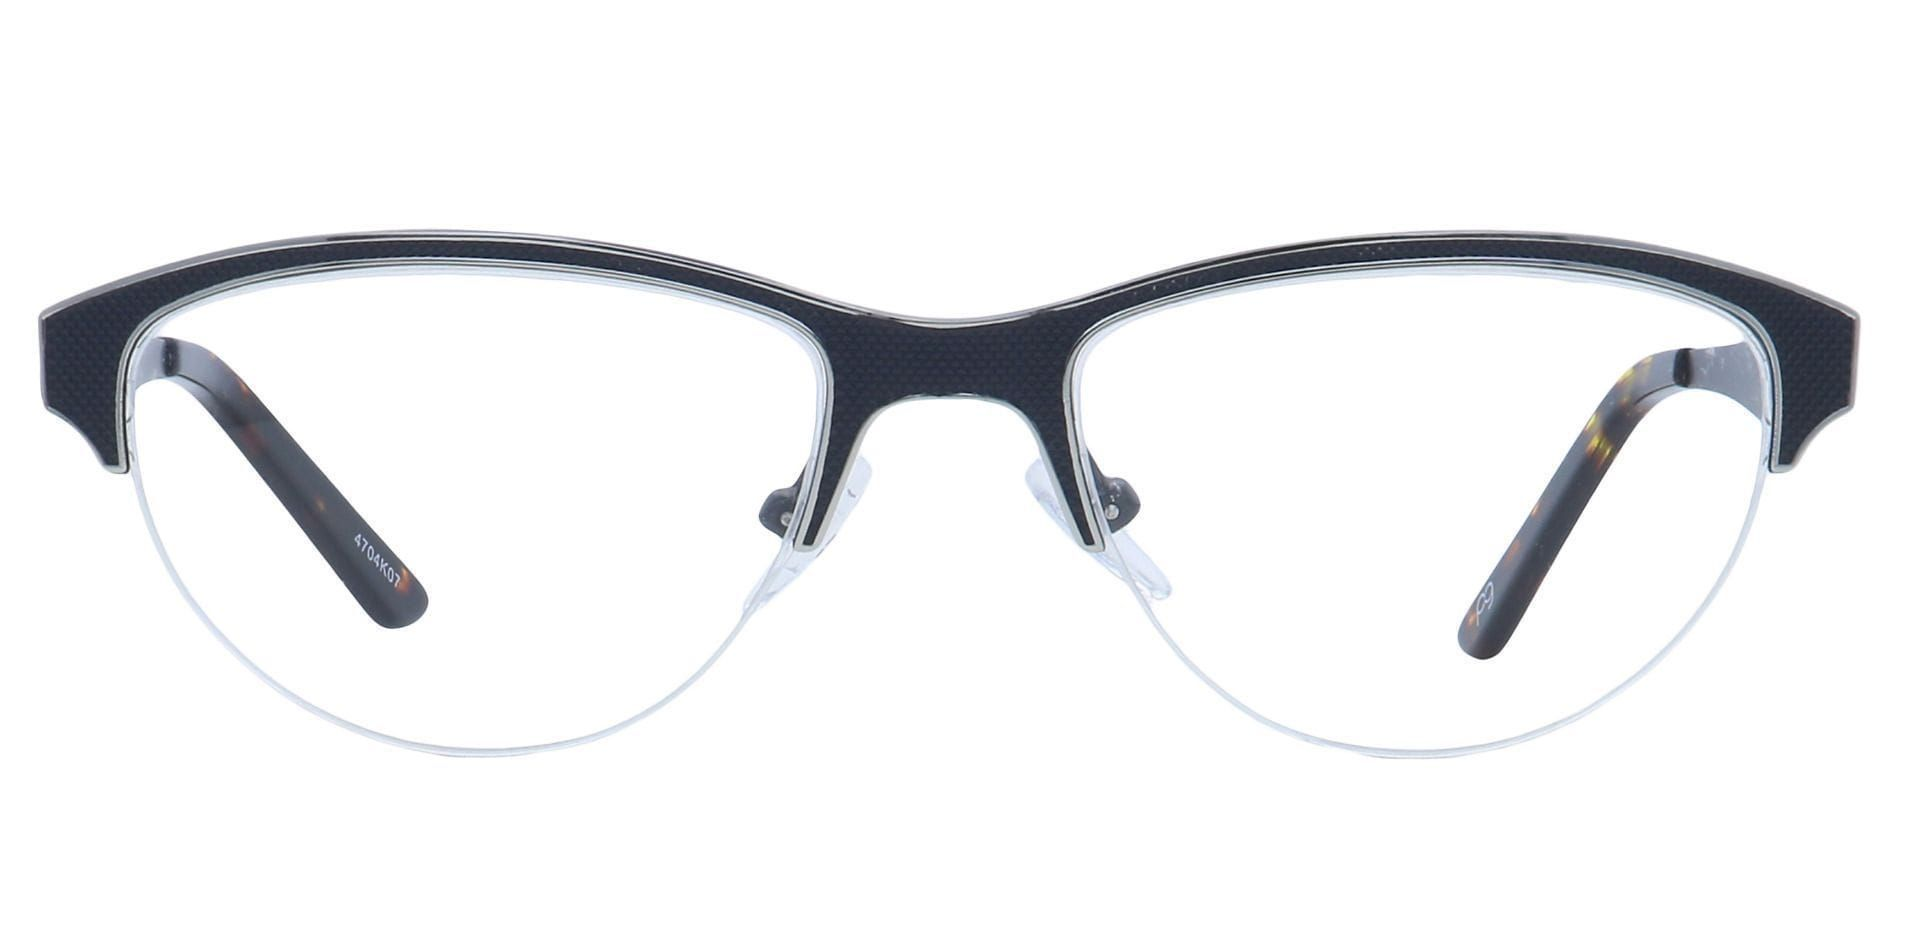 Joan Cat-Eye Prescription Glasses - Black